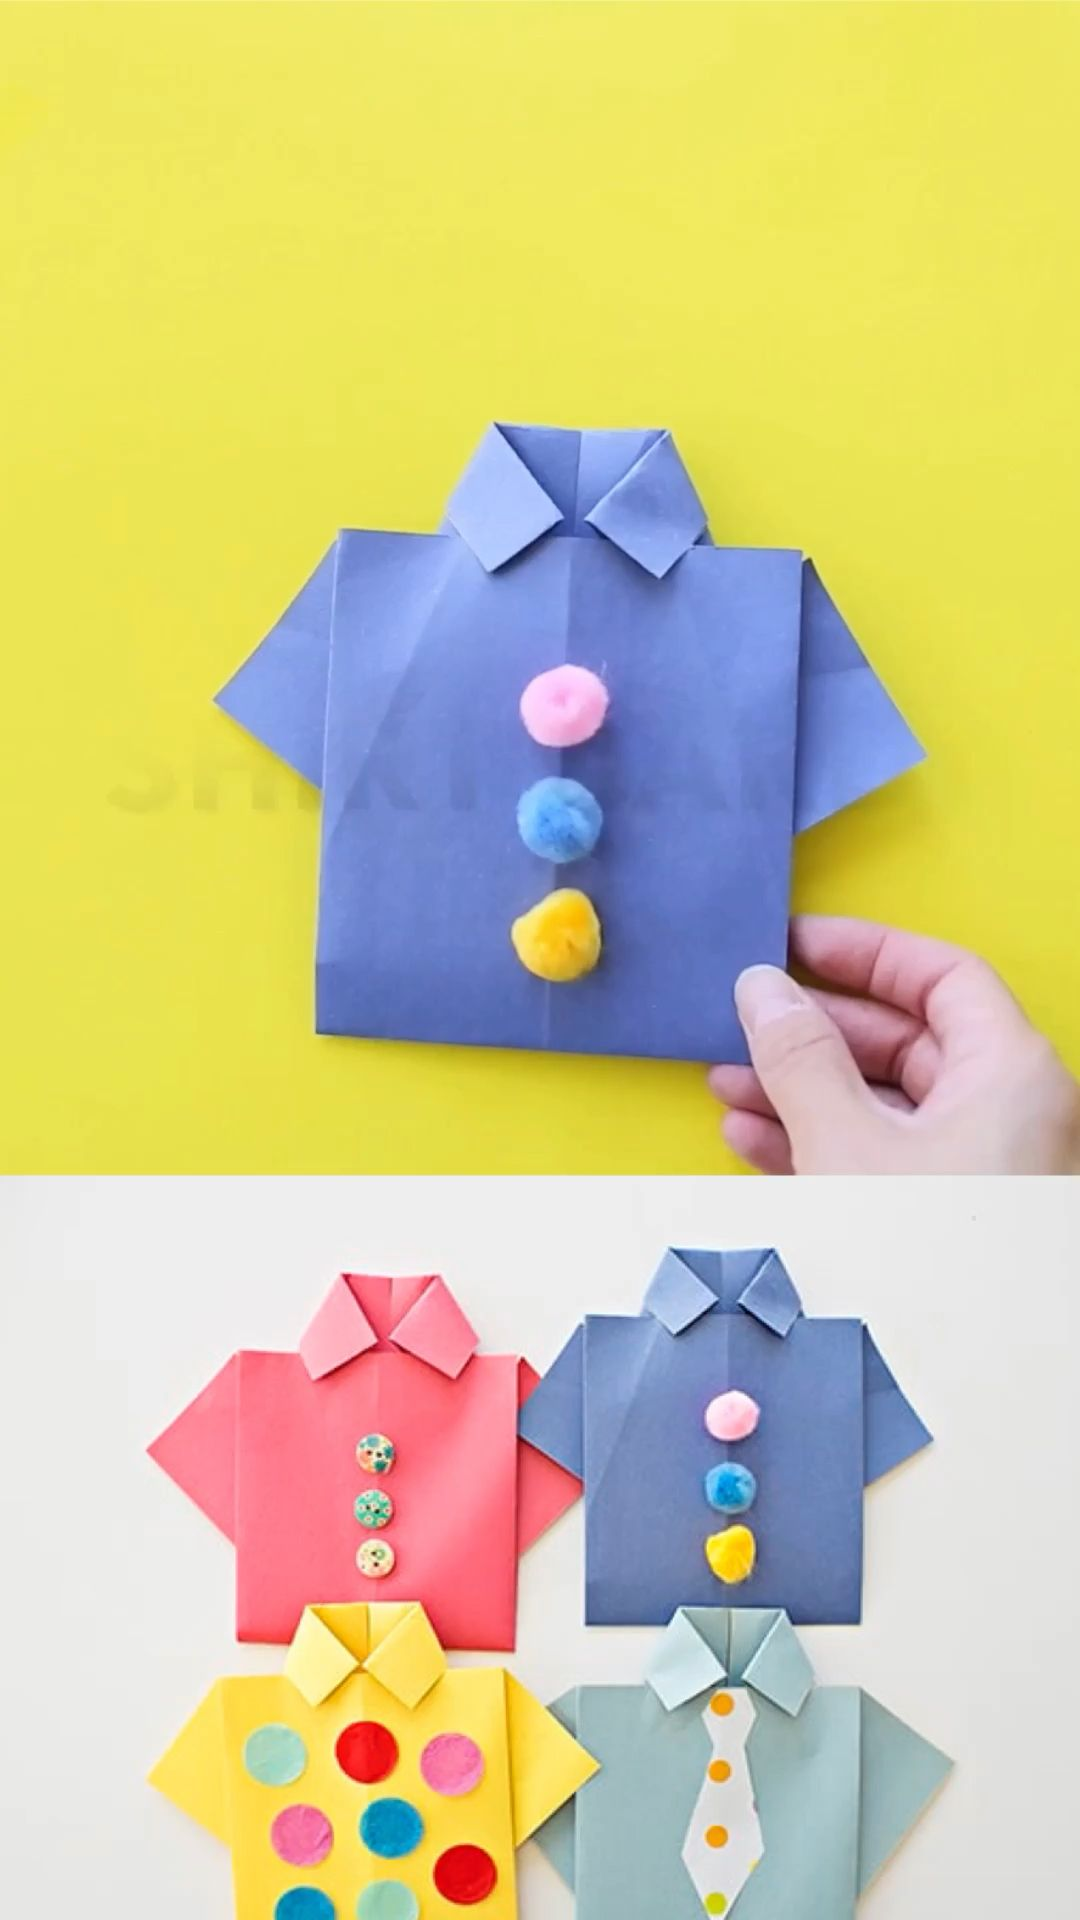 Make these origami shirt father's day cards with the kids to celebrate dad. Include a photo to make it a special handmade father's day card! #hellowonderful